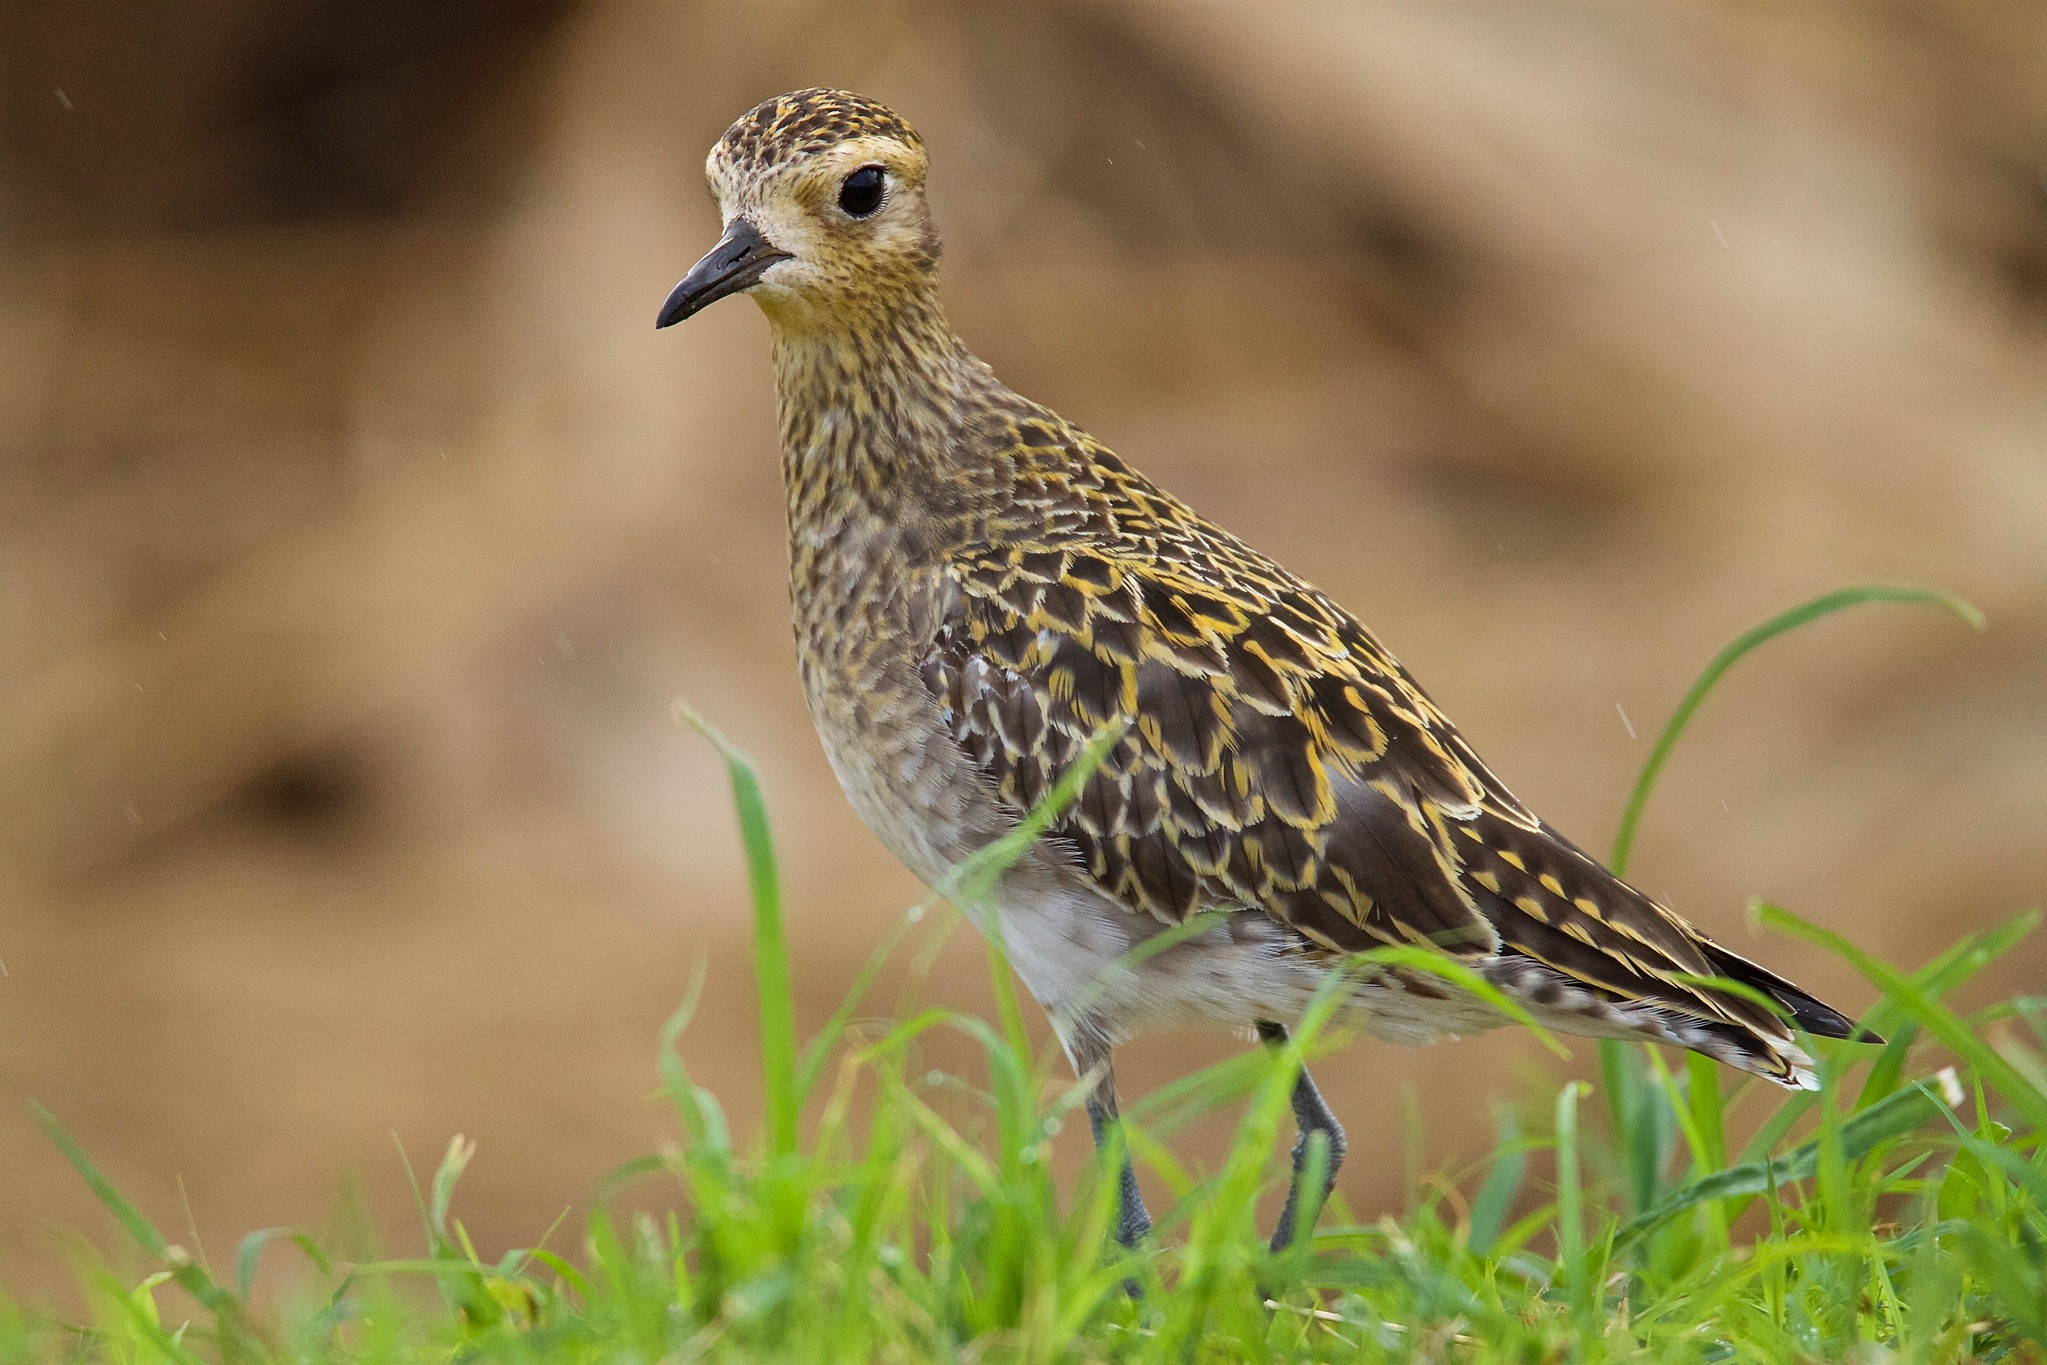 For most of its stay in Hawaiʻi, the kōlea is in its non-breeding plumage. <br>Jerry McFarland © Creative Commons